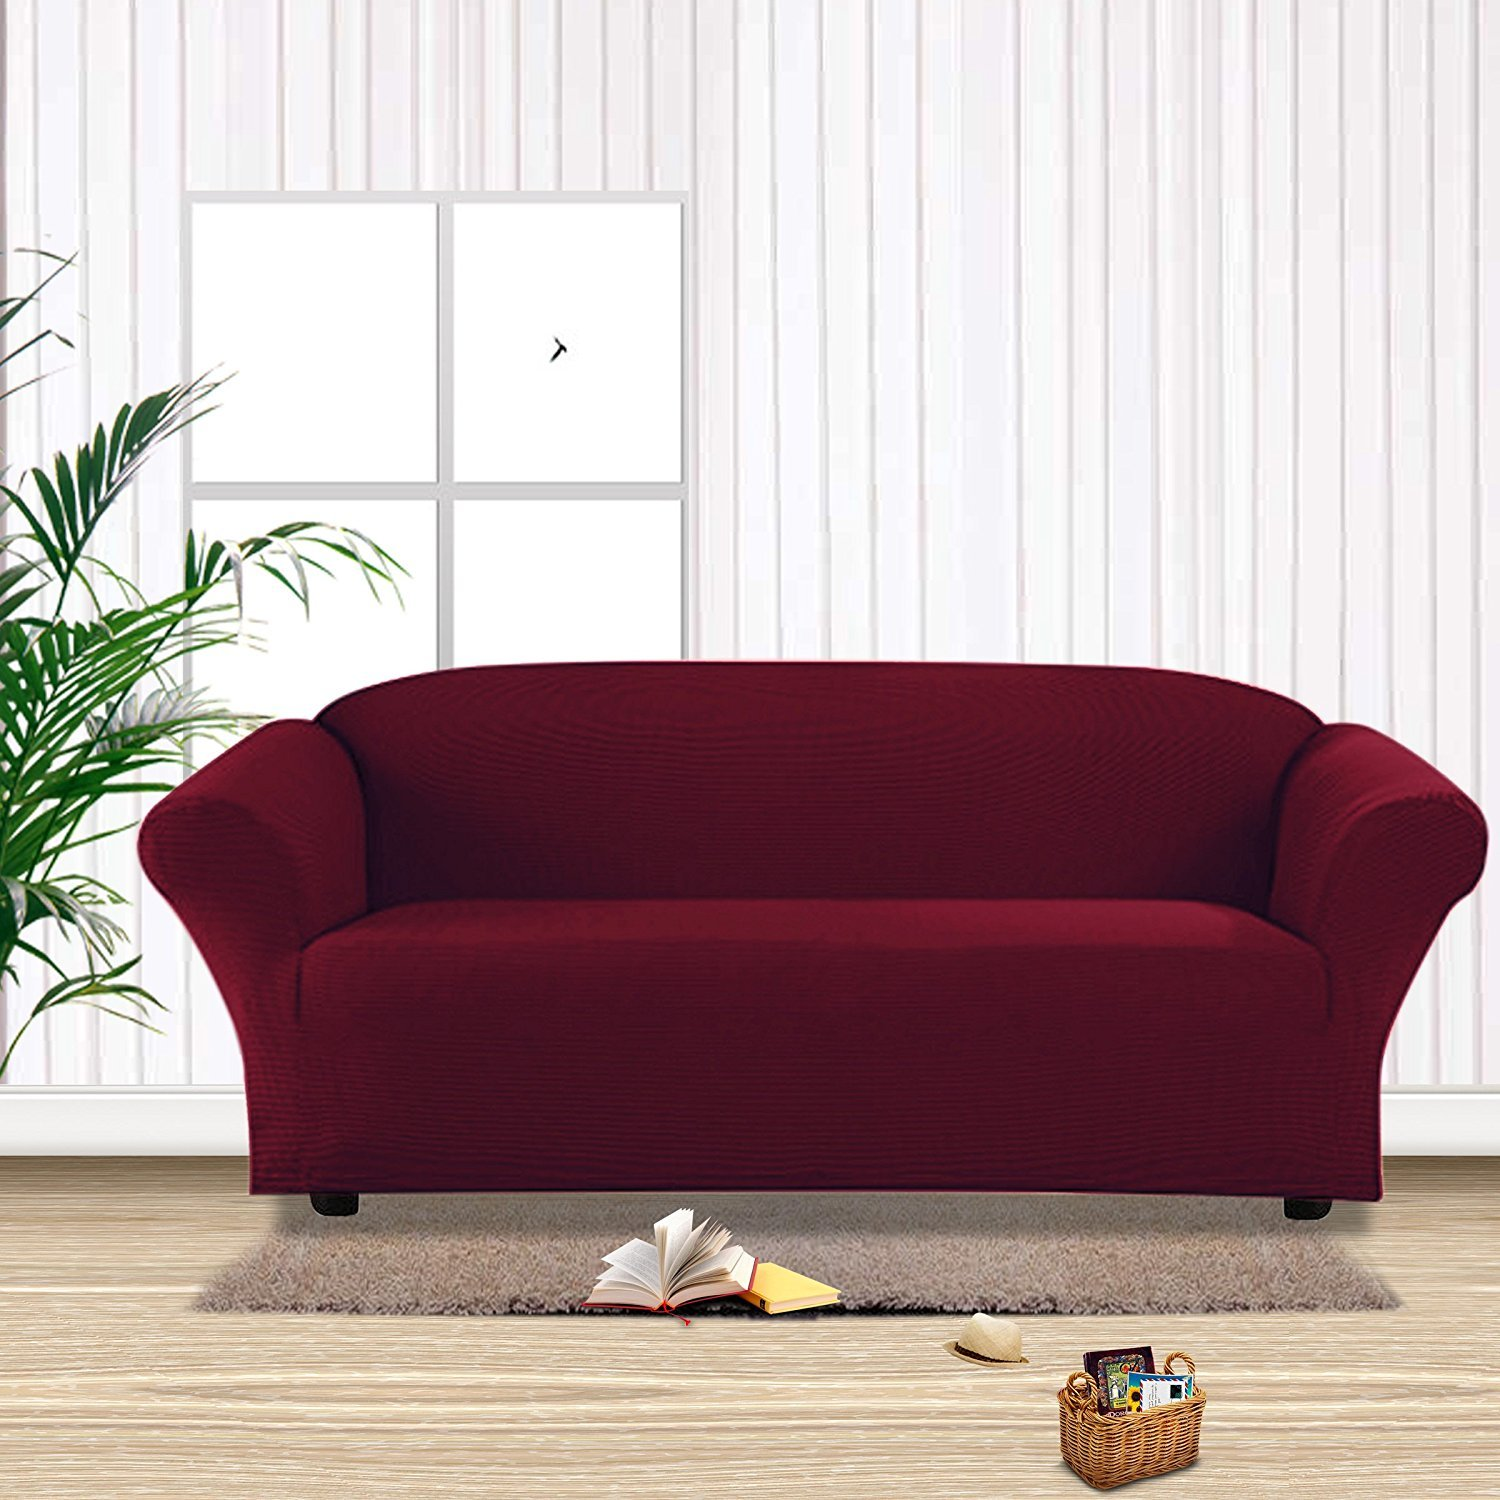 MB Collection Stretch Sofa Slipcover 1 Piece Sofa Bed Cover, Sofa Covers, Furniture Slipcover, Spandex Slipcovers (Burgundy)